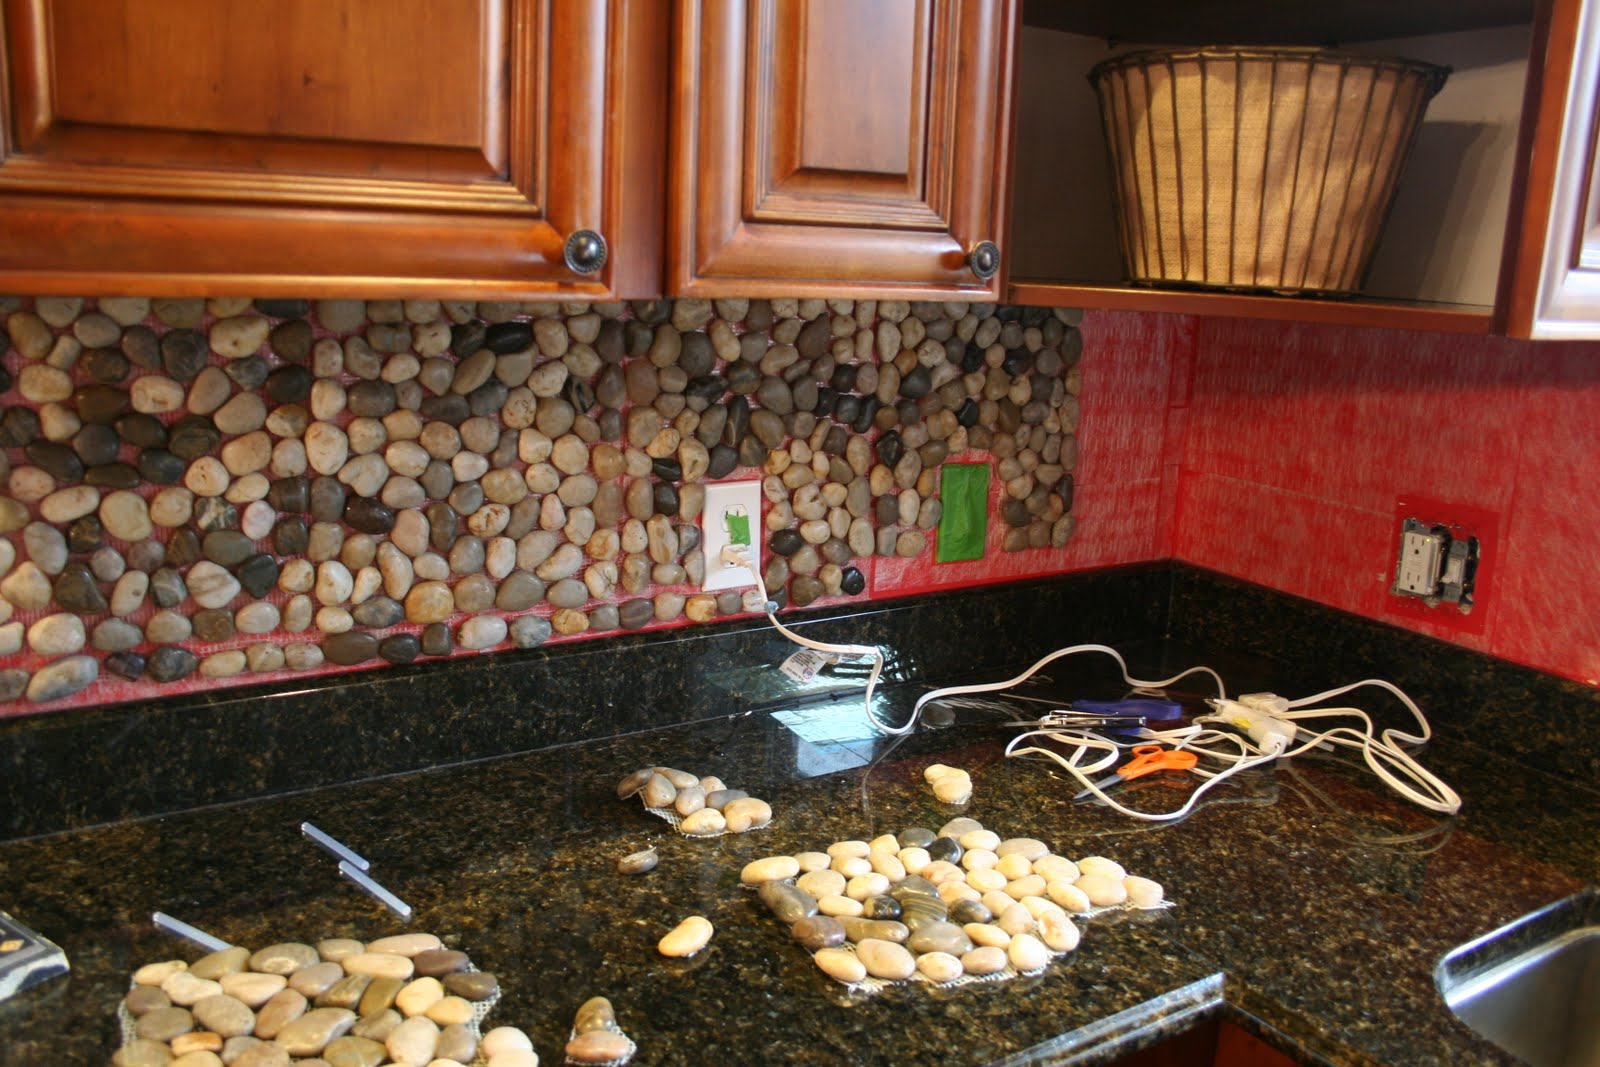 Garden Stone Kitchen Backsplash Tutorial how to backsplash